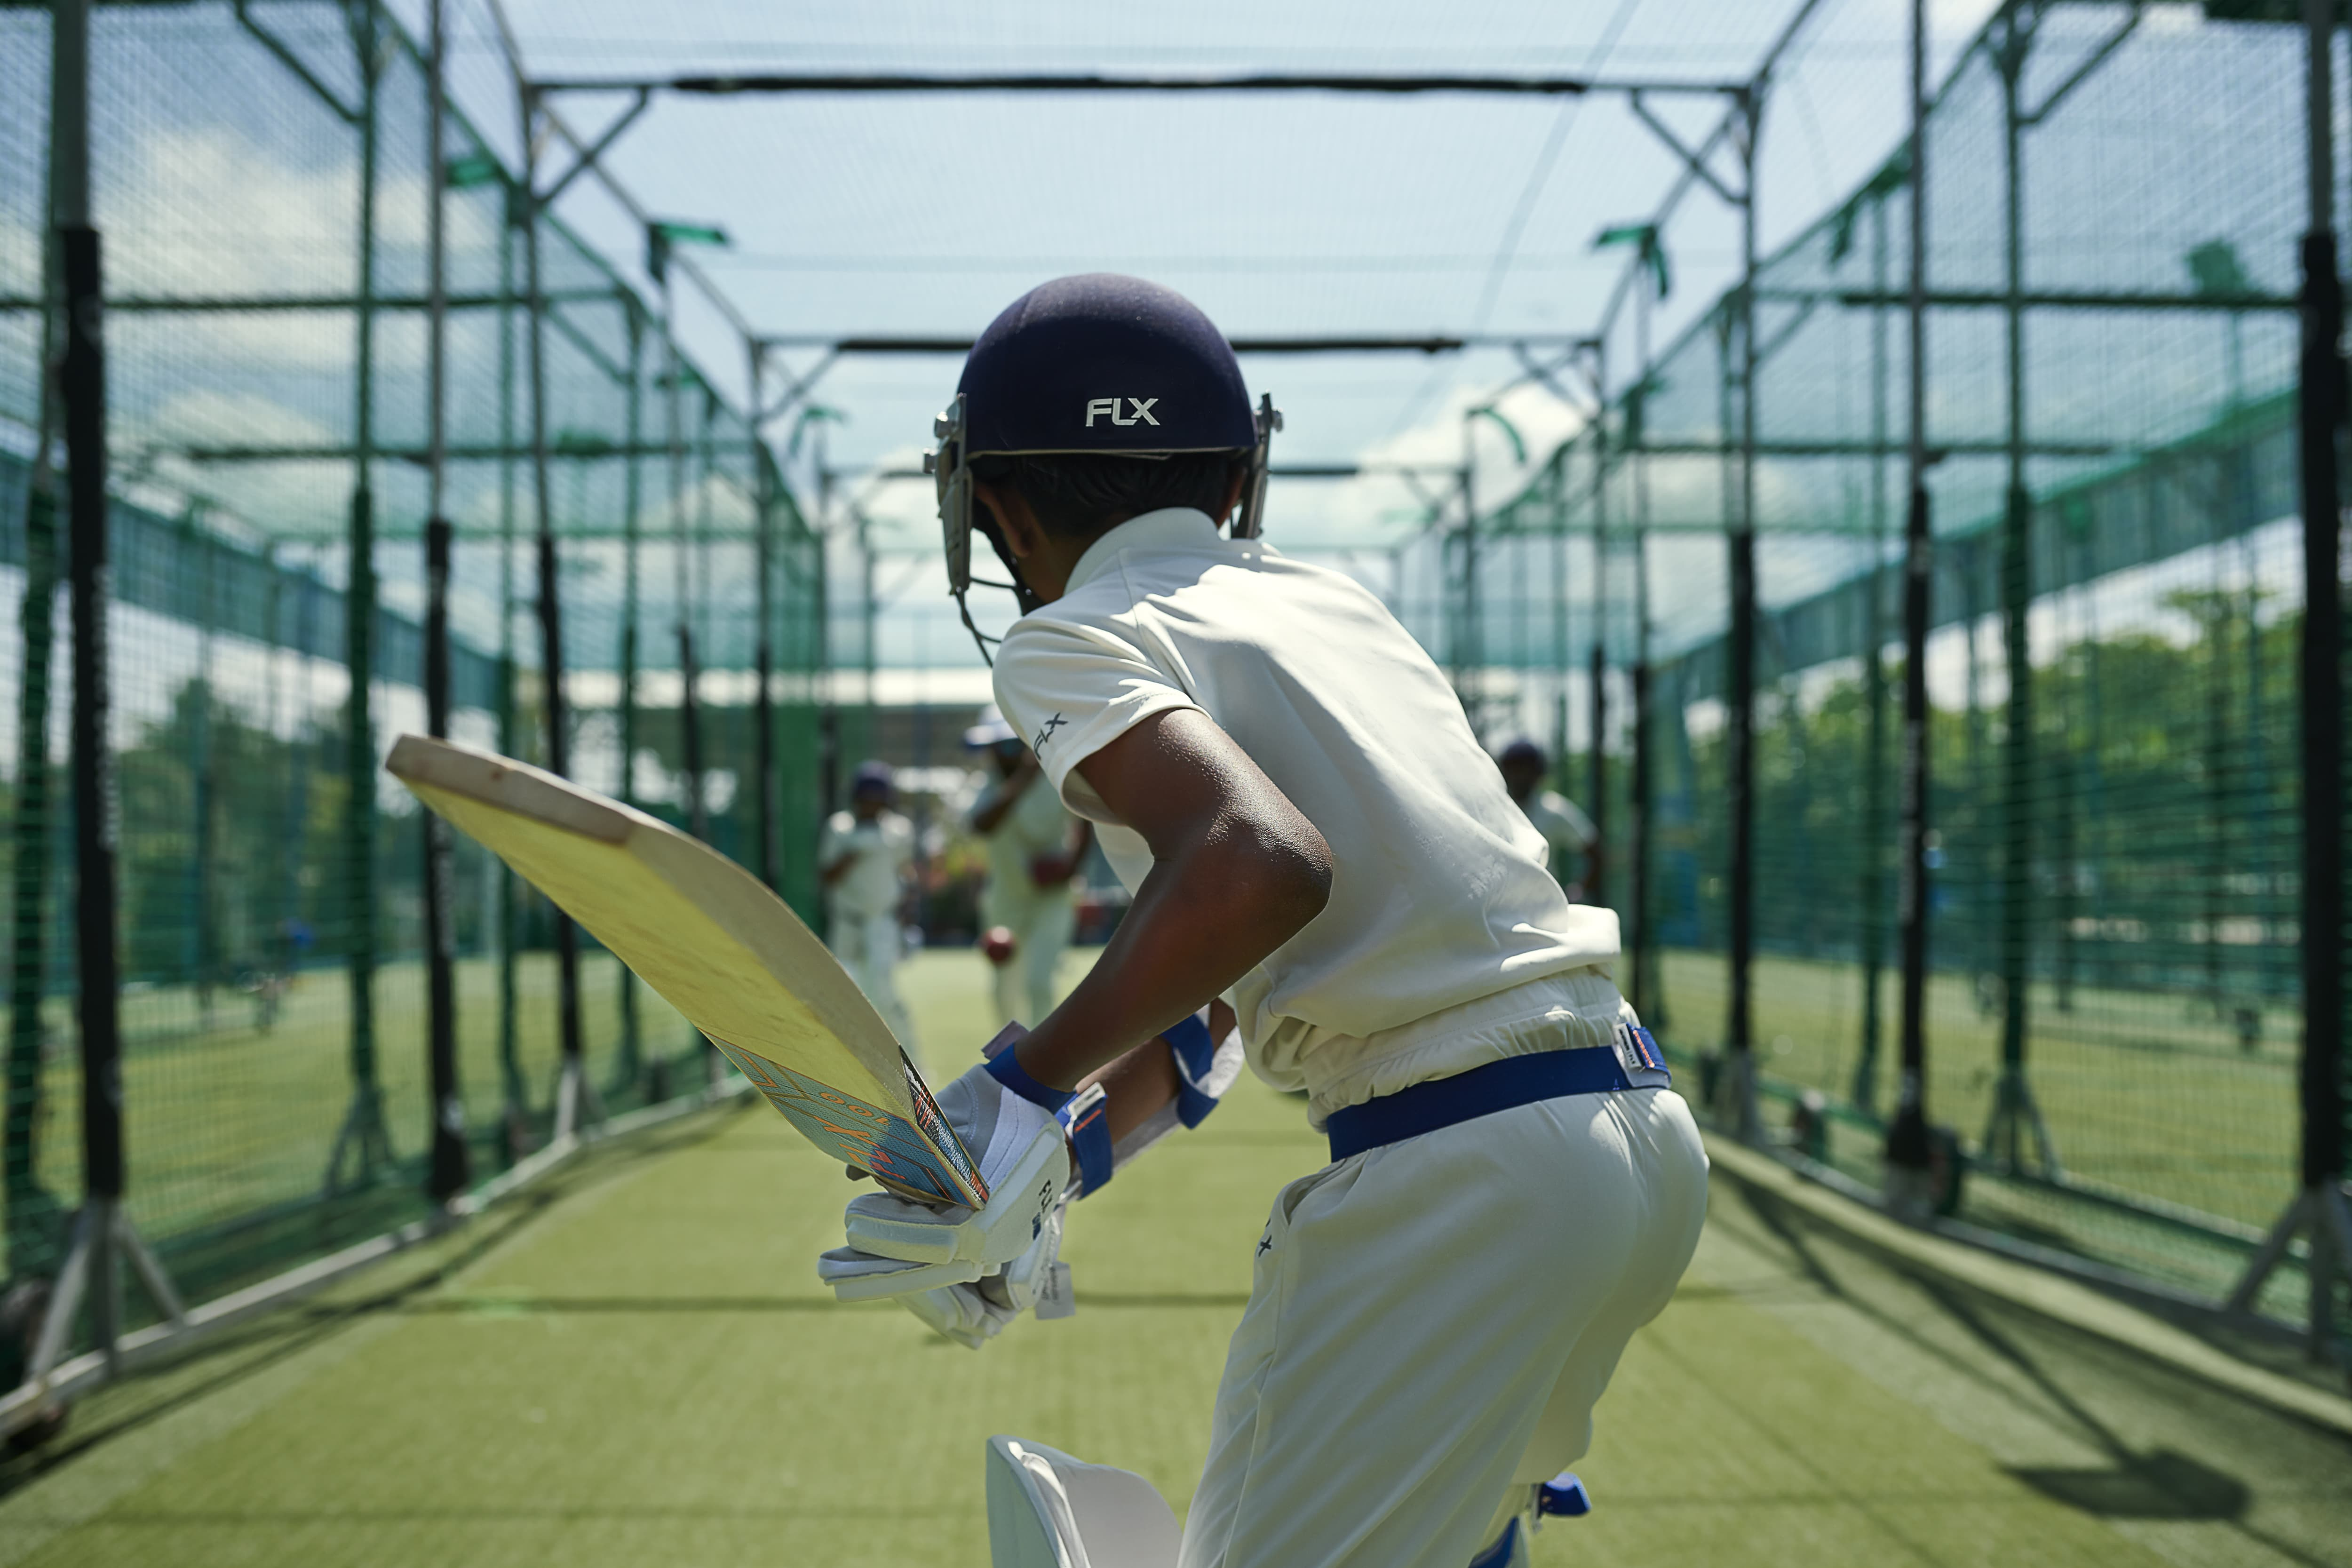 How To Choose The Best Leather Ball Bat For Your Child?